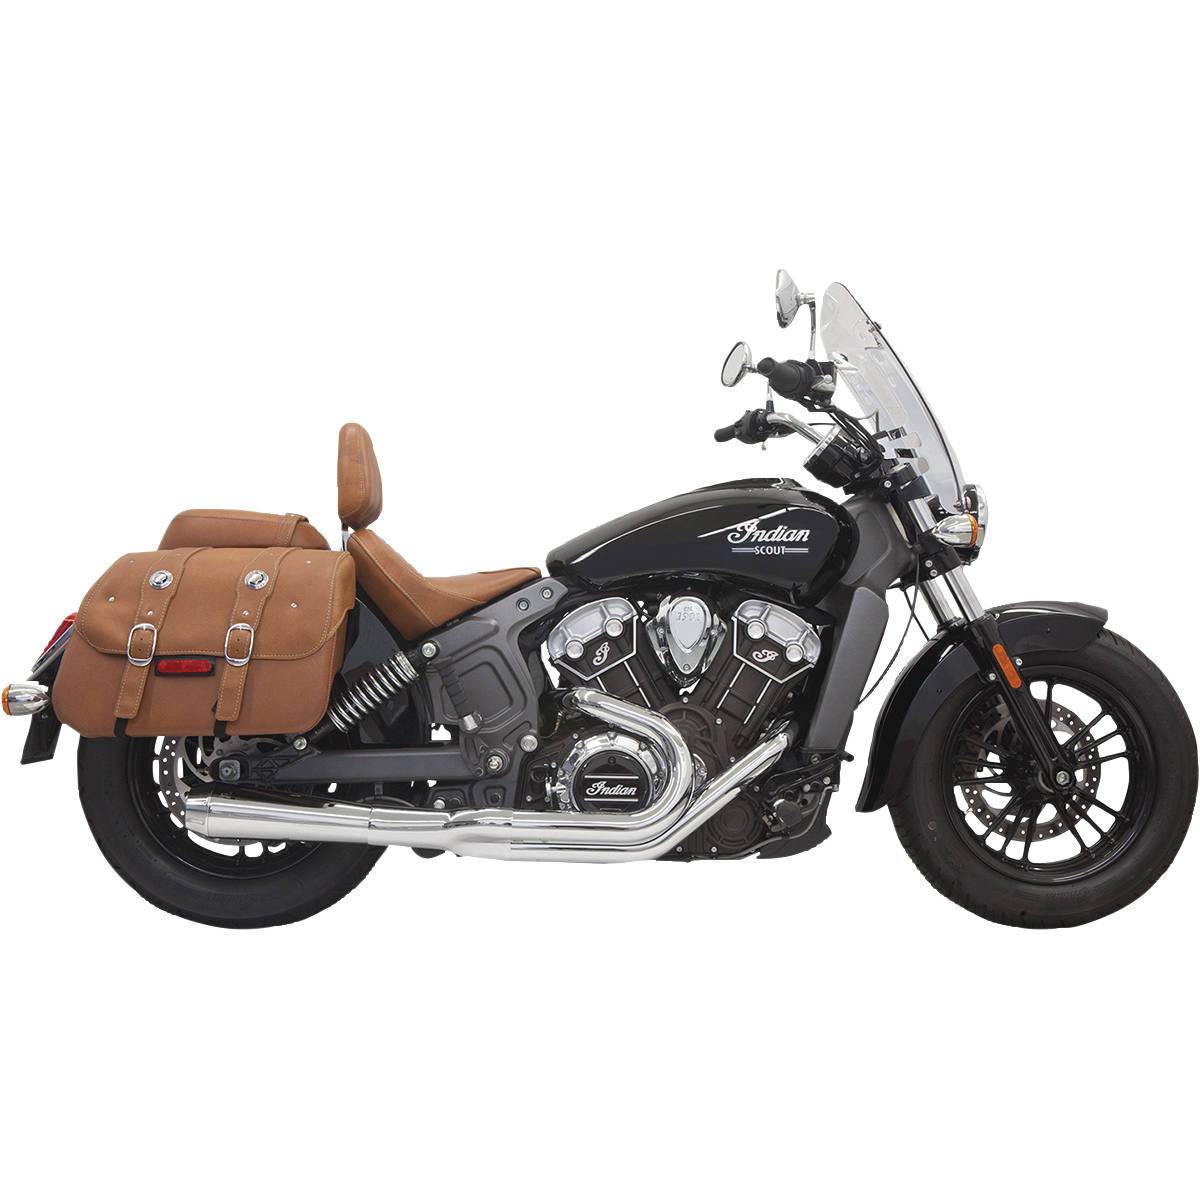 Bassani Chrome Short Road Rage 2-into-1 Exhaust System